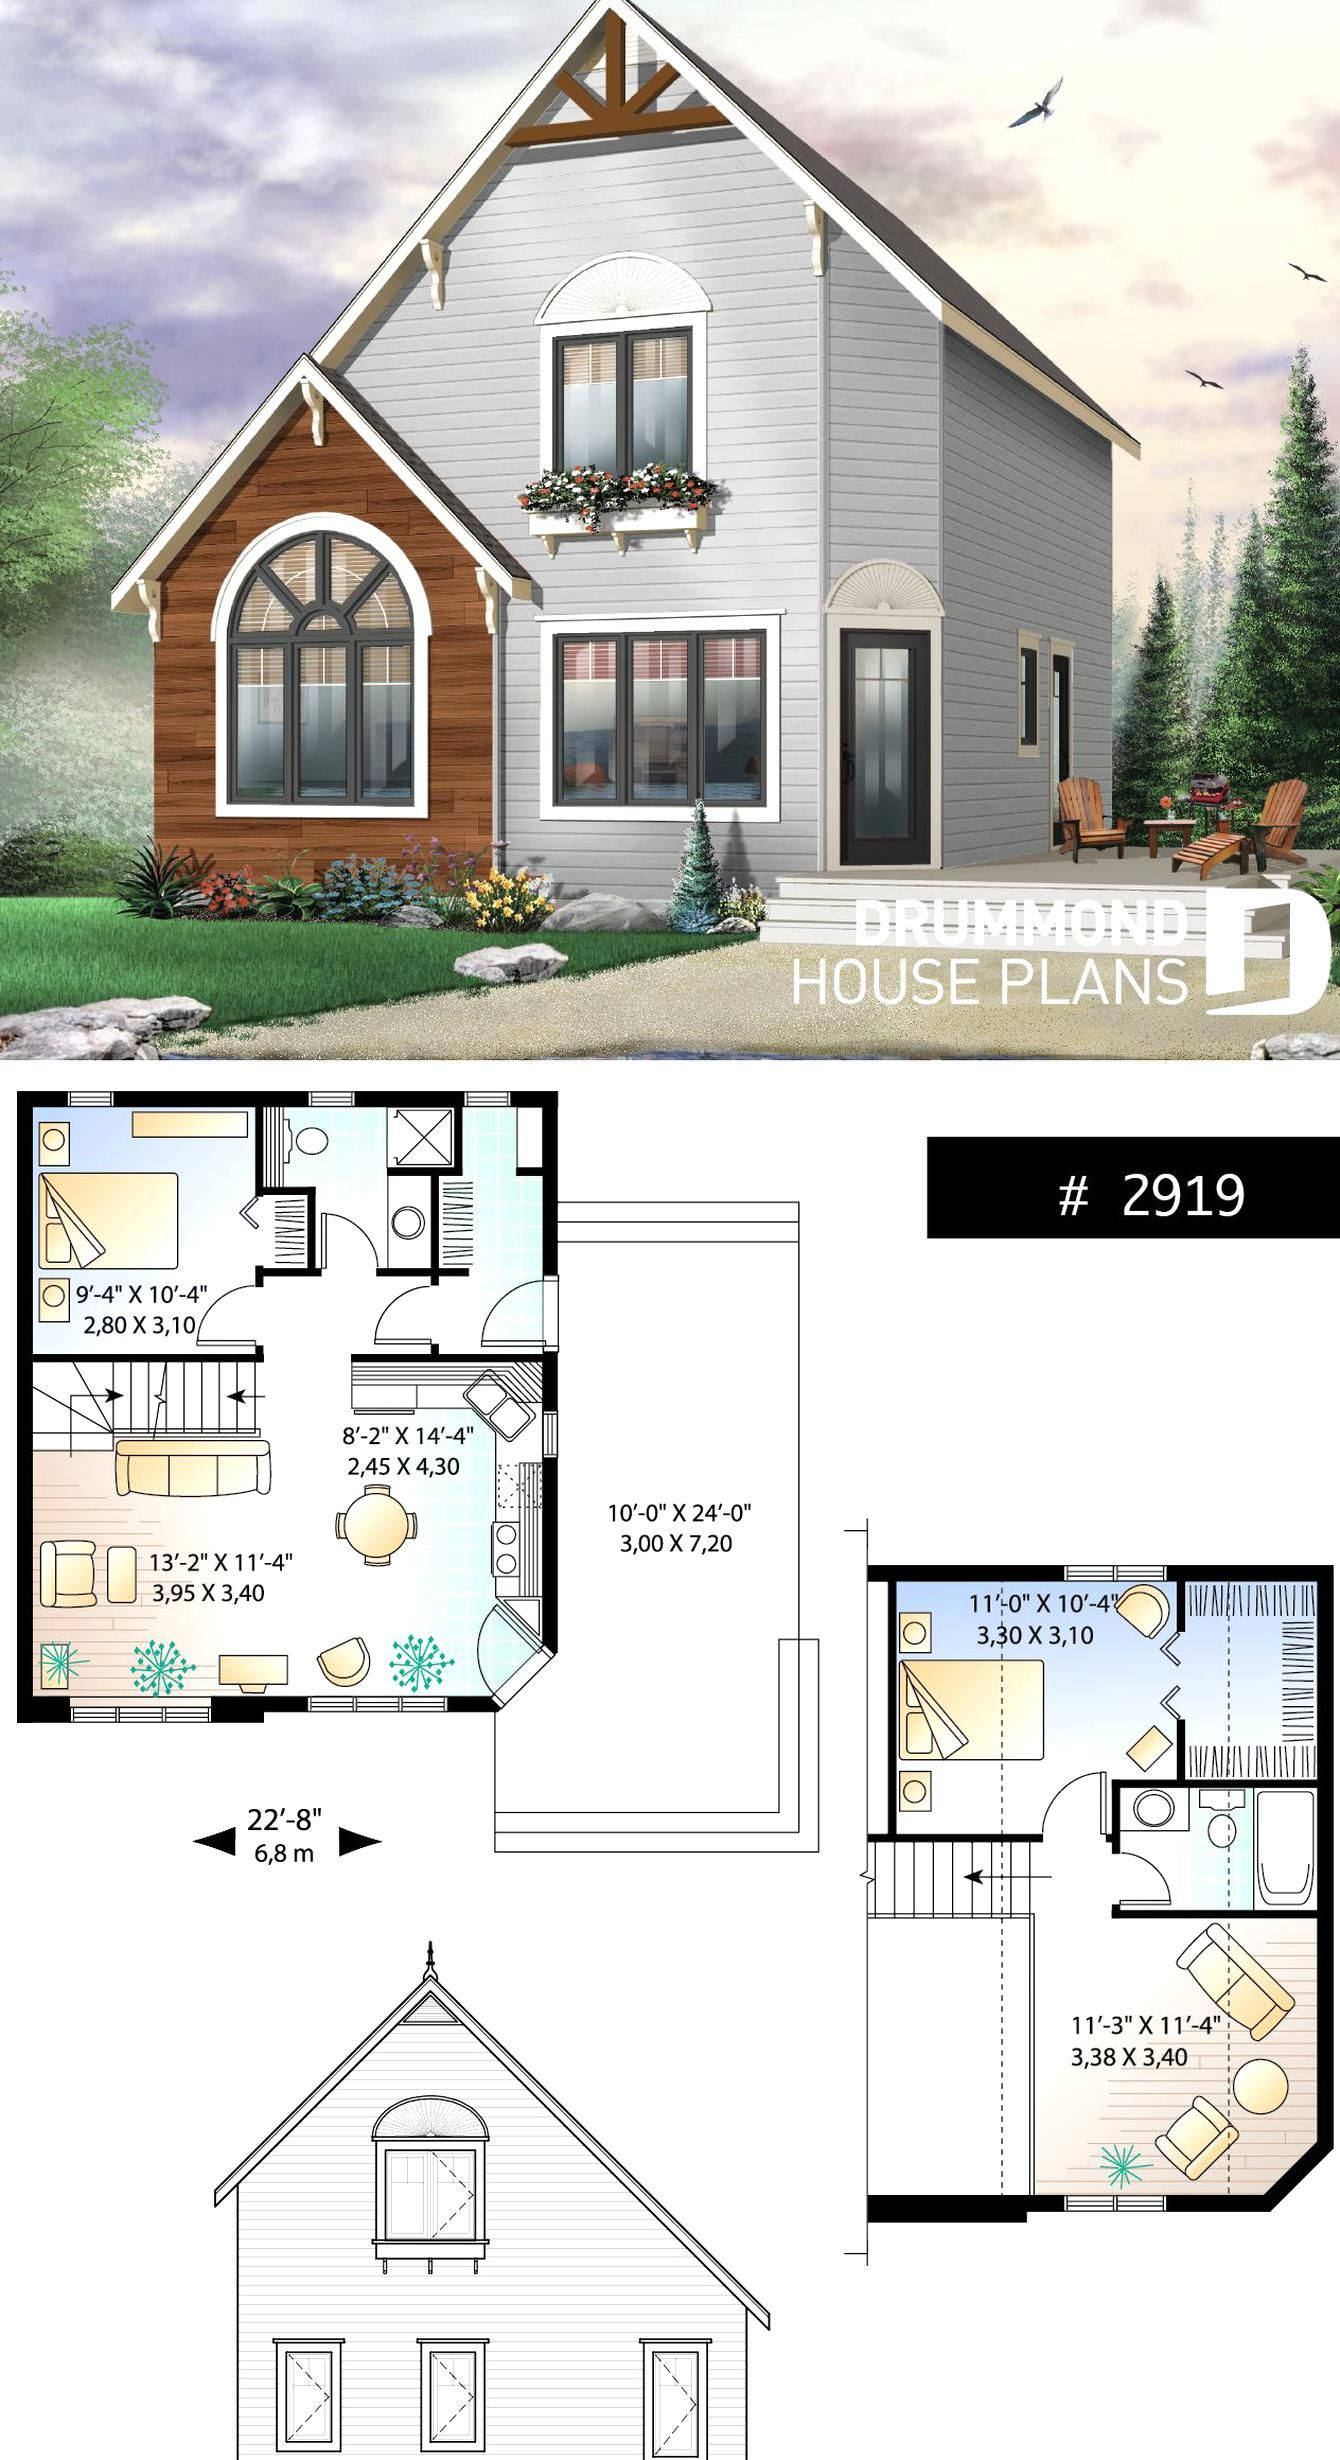 2 To 3 Bedroom Affordable Home Plan Transitional Home Design With Mezzanine And Open Floor Plan In 2020 Sims House Plans House Plans Cottage House Plans